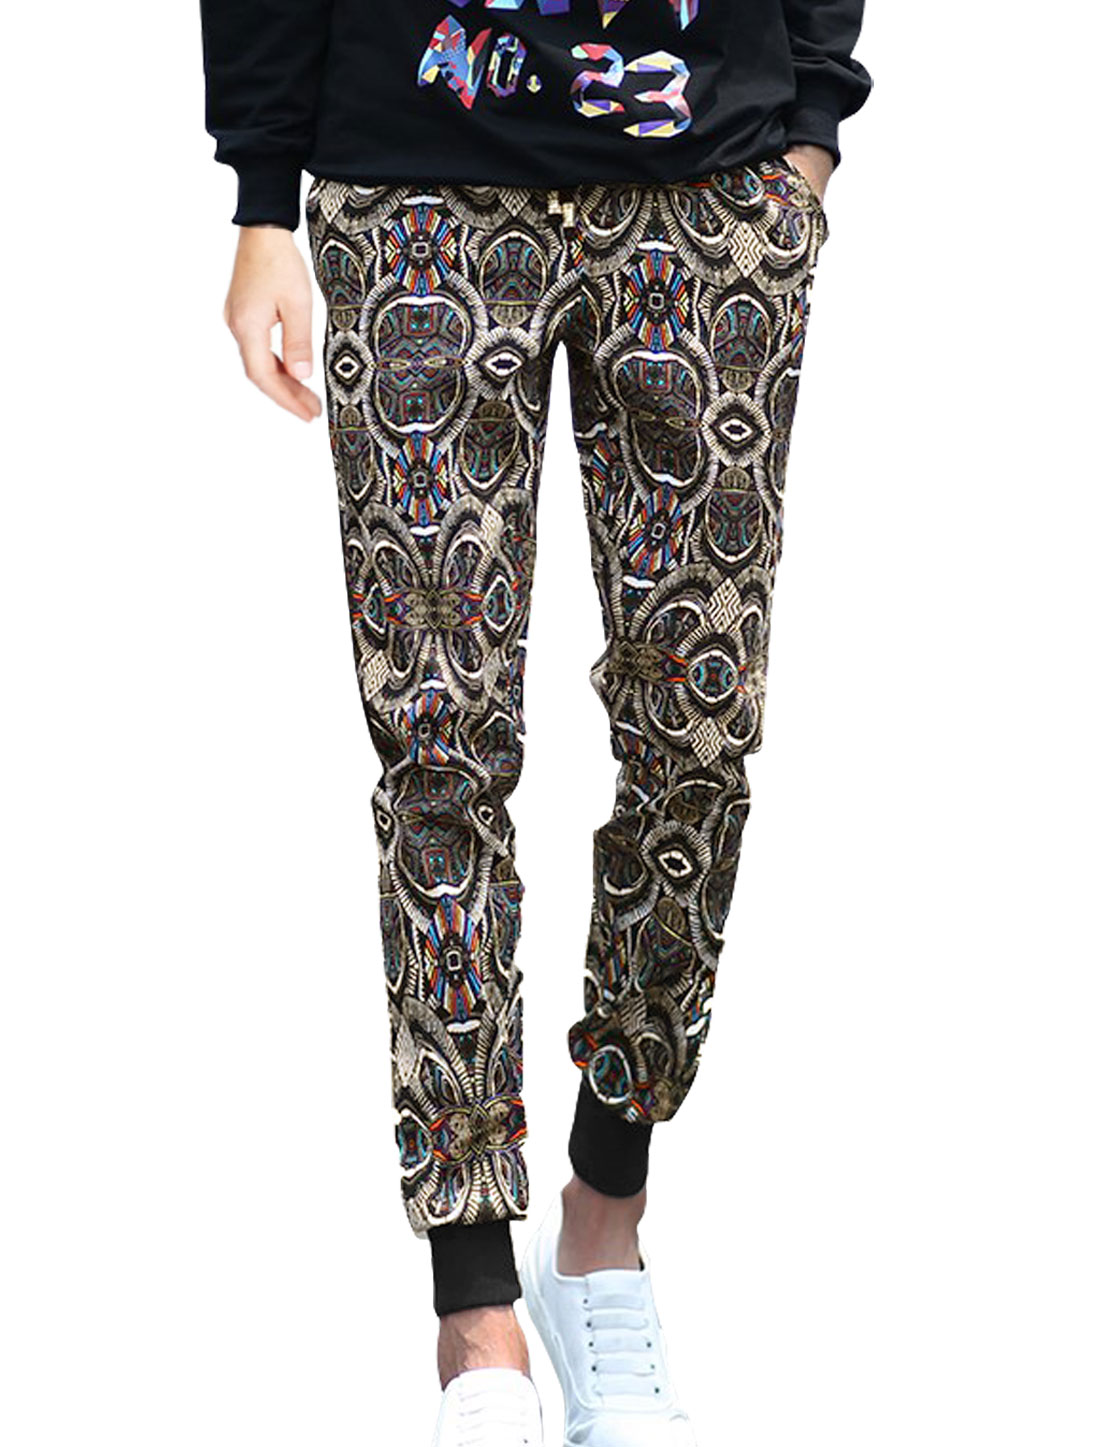 Men Natural Waist Novelty Prints Tapered Pants Black W32